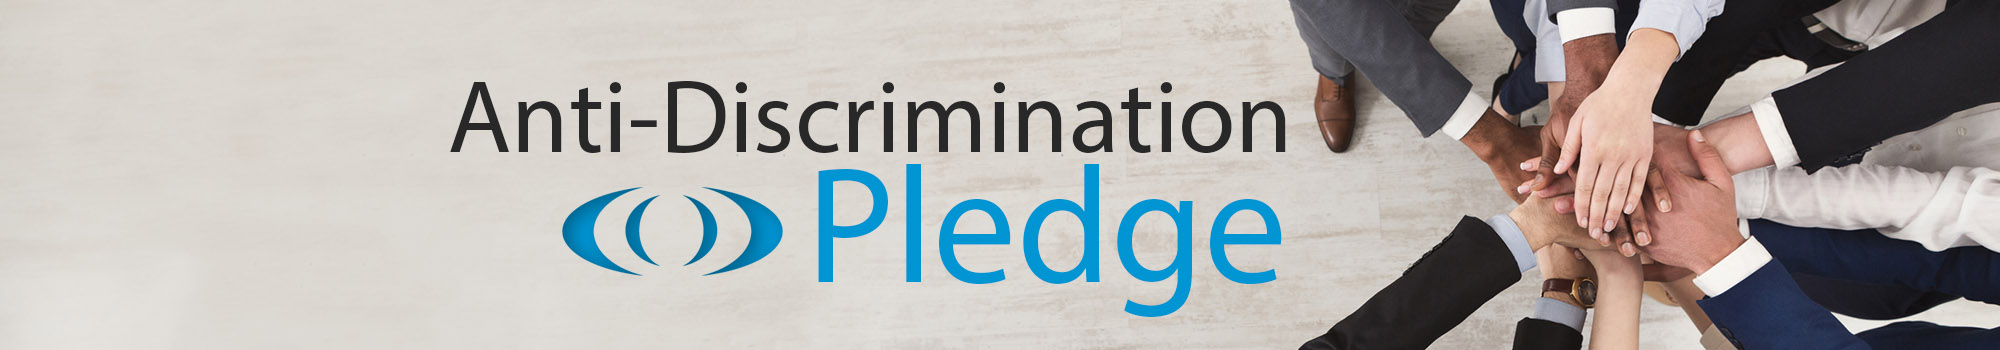 Anti-discrimination pledge